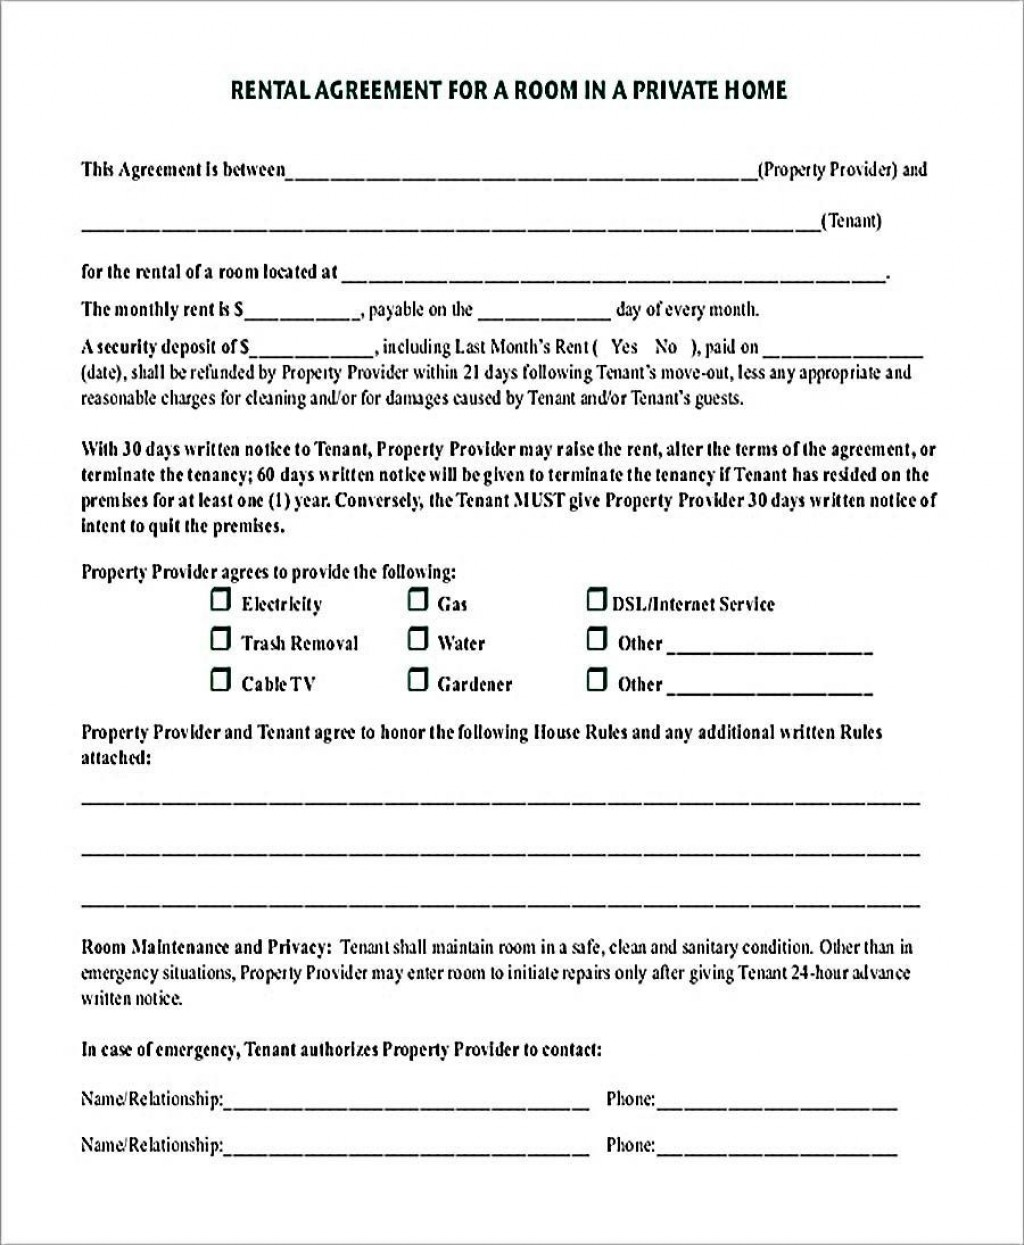 003 Unbelievable Rental House Contract Template Free Highest Quality  Agreement Form Property LeaseLarge